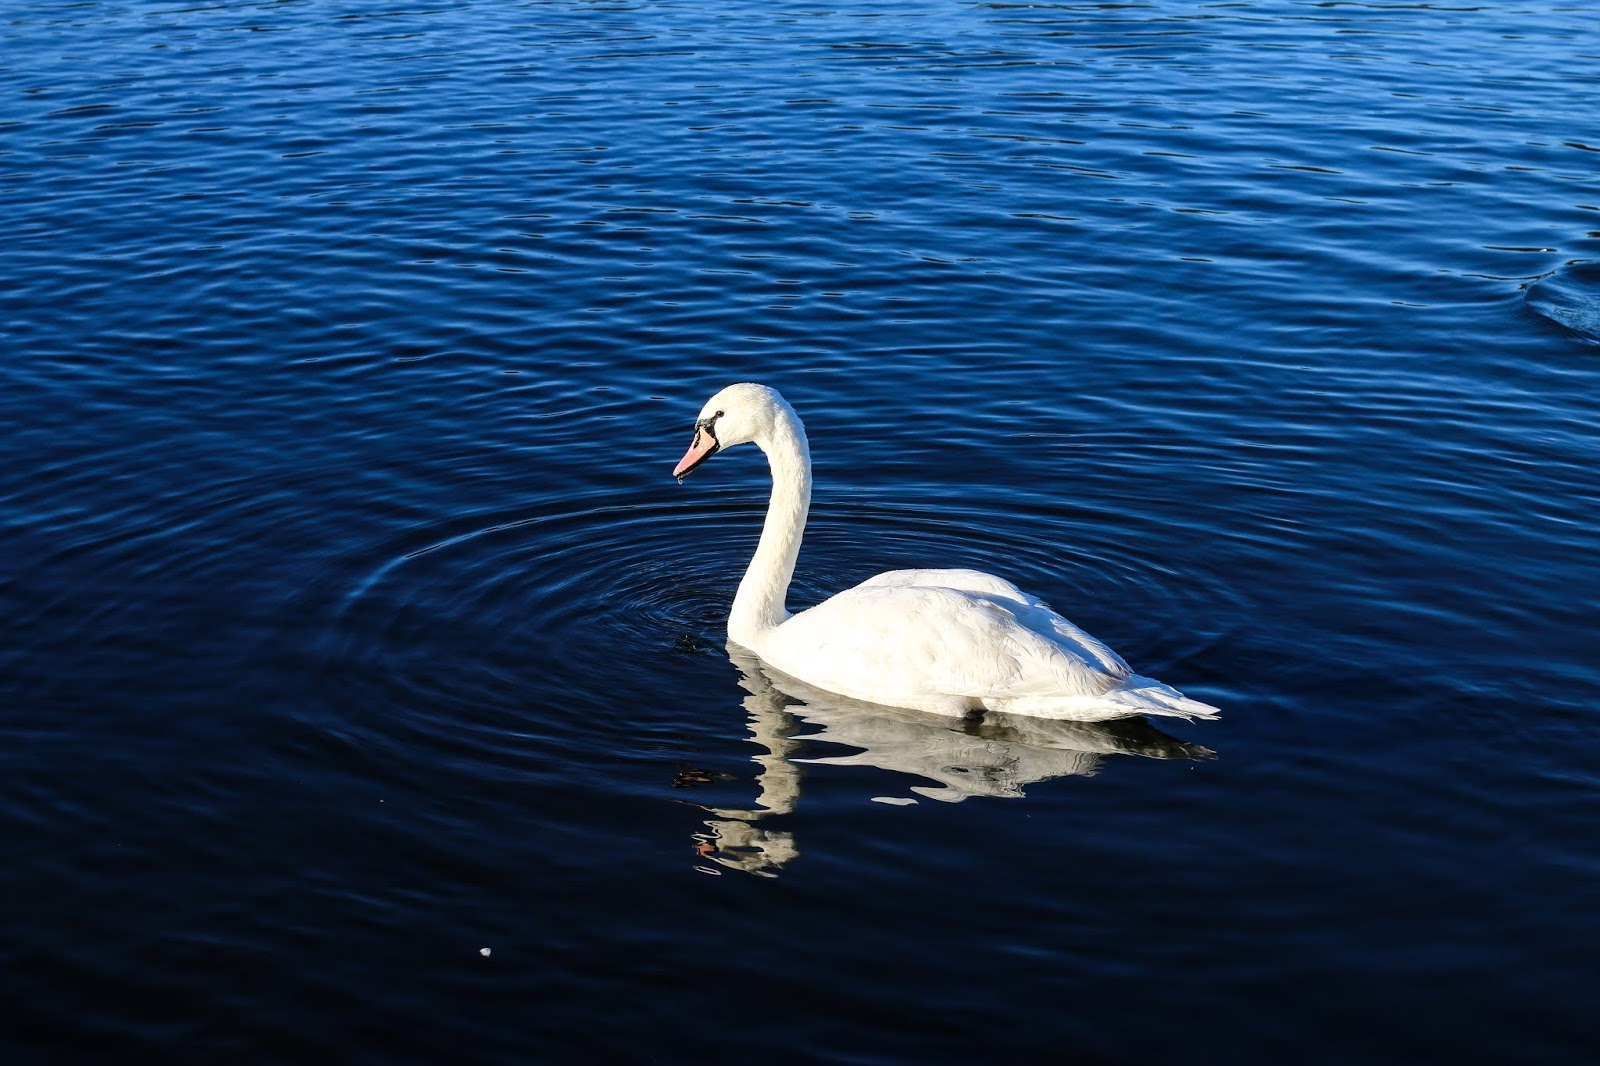 a close up of a swan swimming on broadwood loch